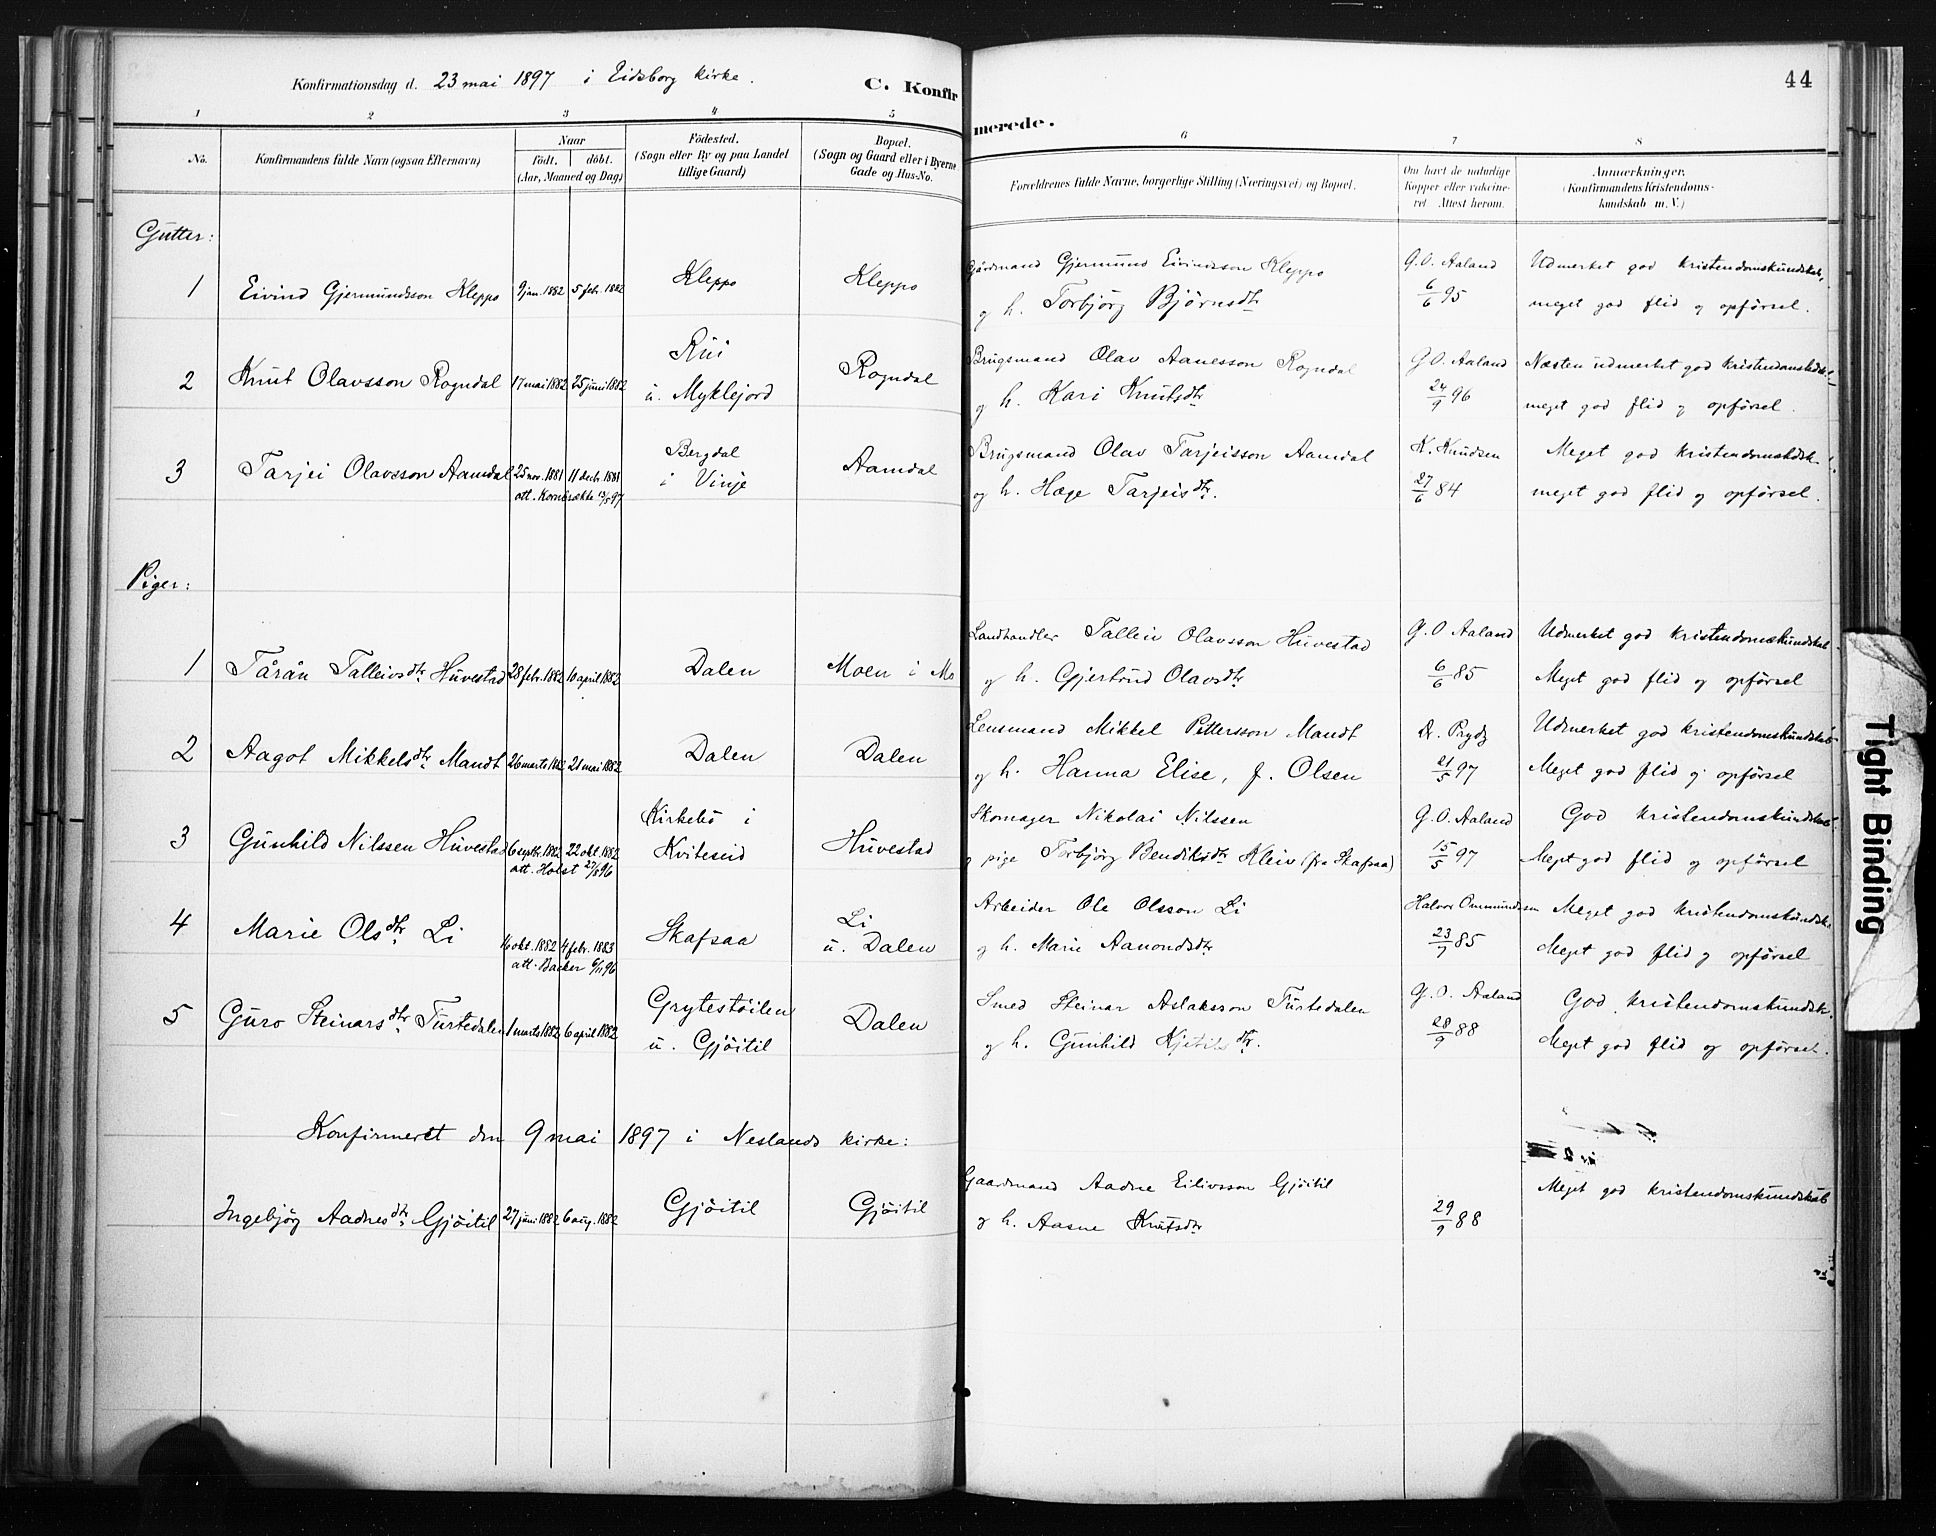 SAKO, Lårdal kirkebøker, F/Fb/L0002: Parish register (official) no. II 2, 1887-1918, p. 44